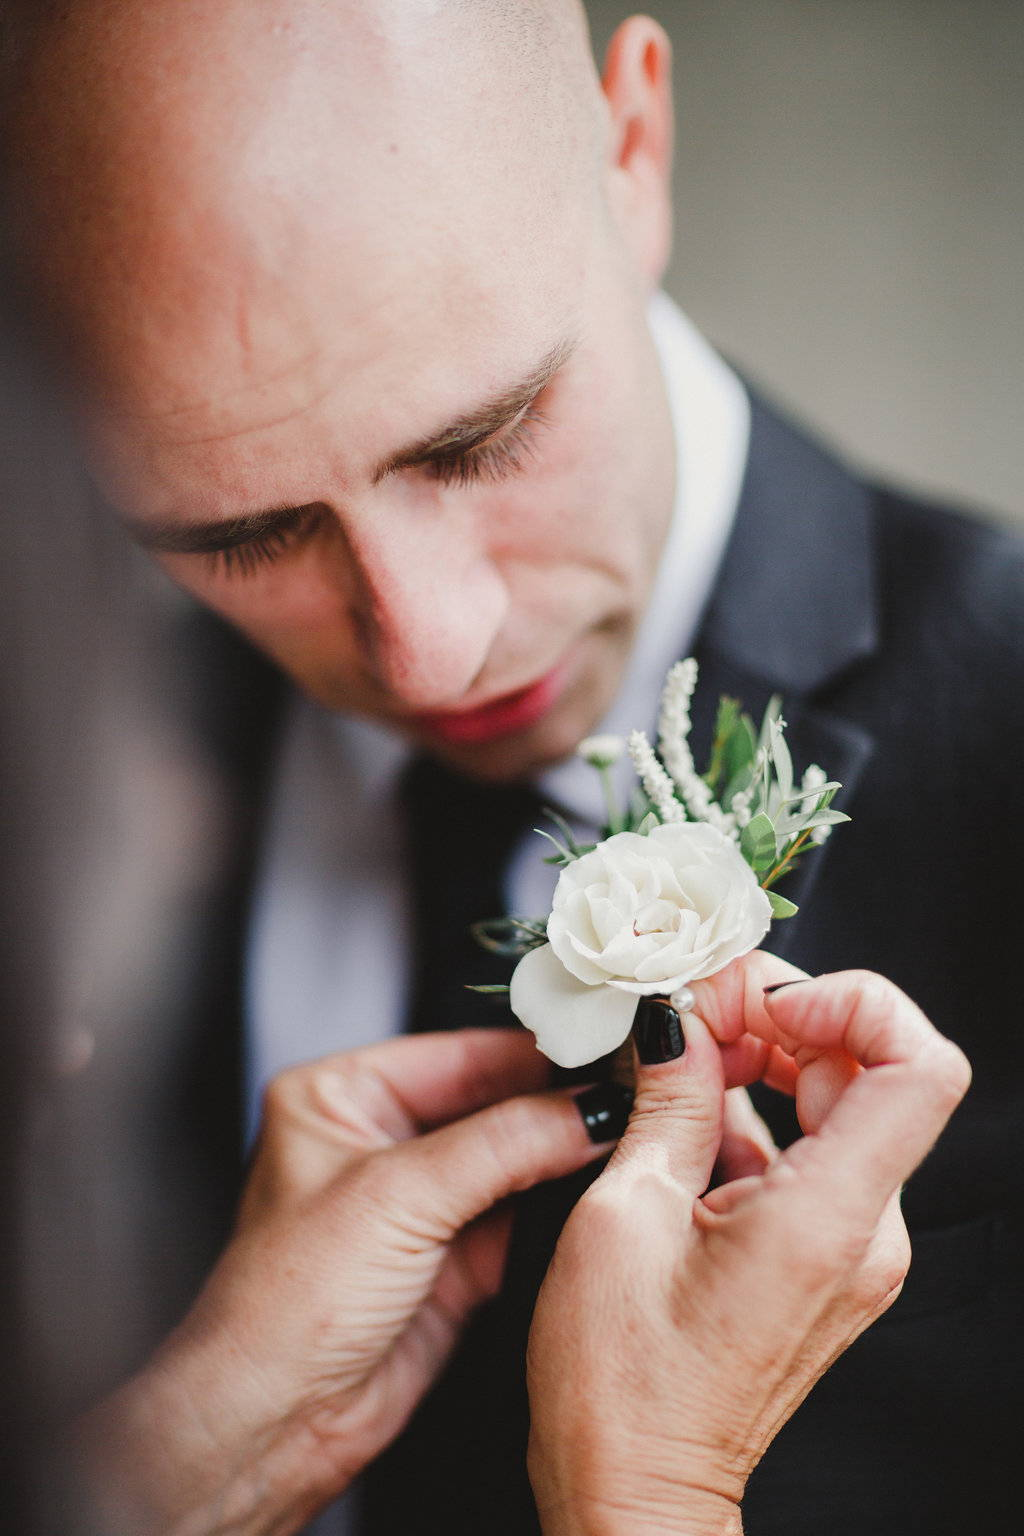 A groom with a boutonniere being pinned on him